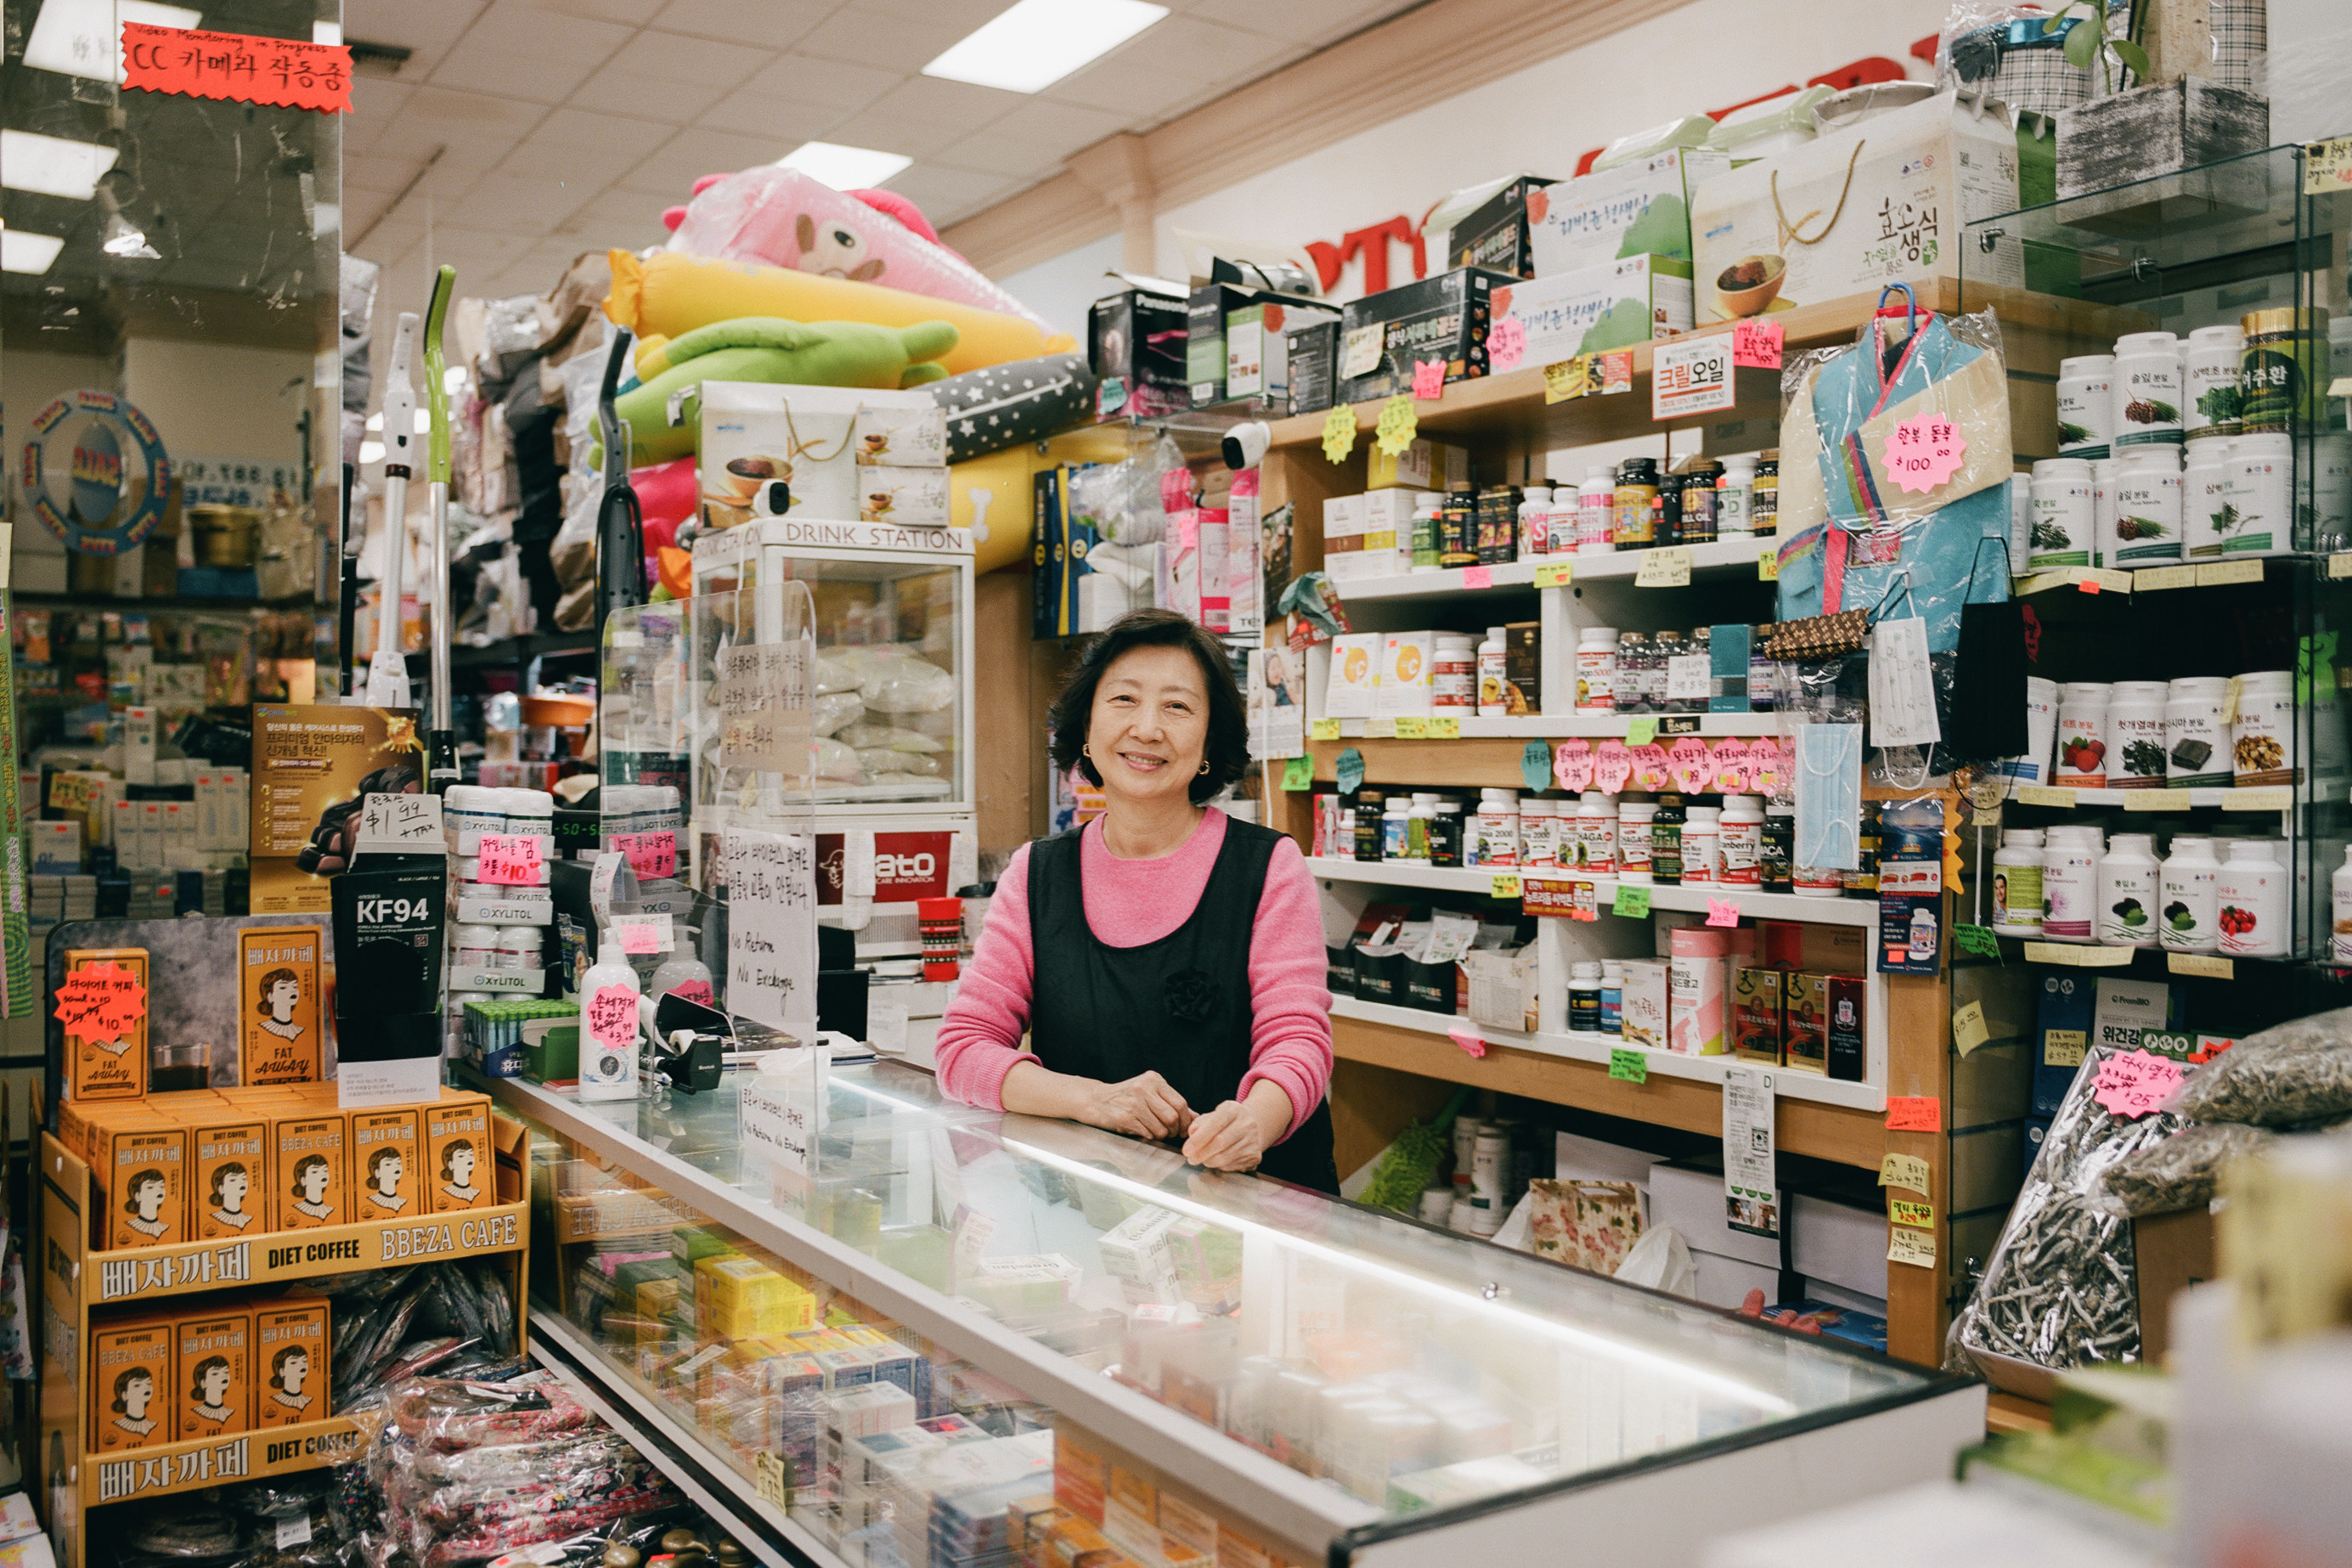 A woman smiles at the camera from behind the counter of her home goods store, the shelves behind her filled to the ceiling with merchandise